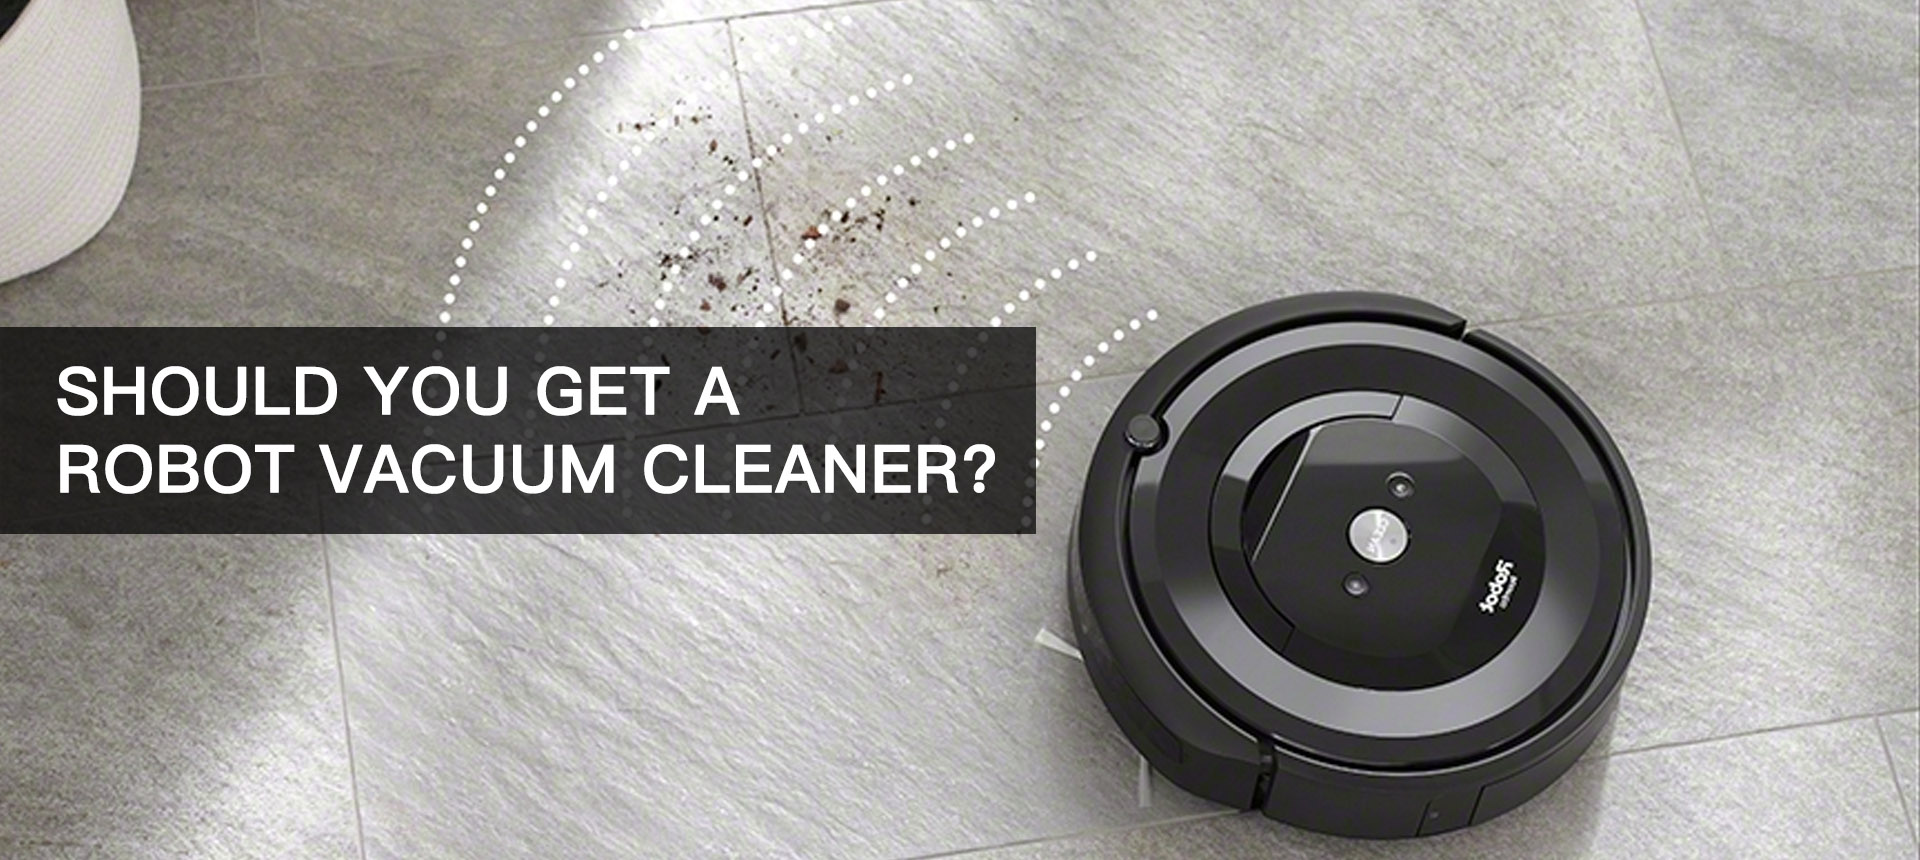 Should You Get A Robot Vacuum Cleaner